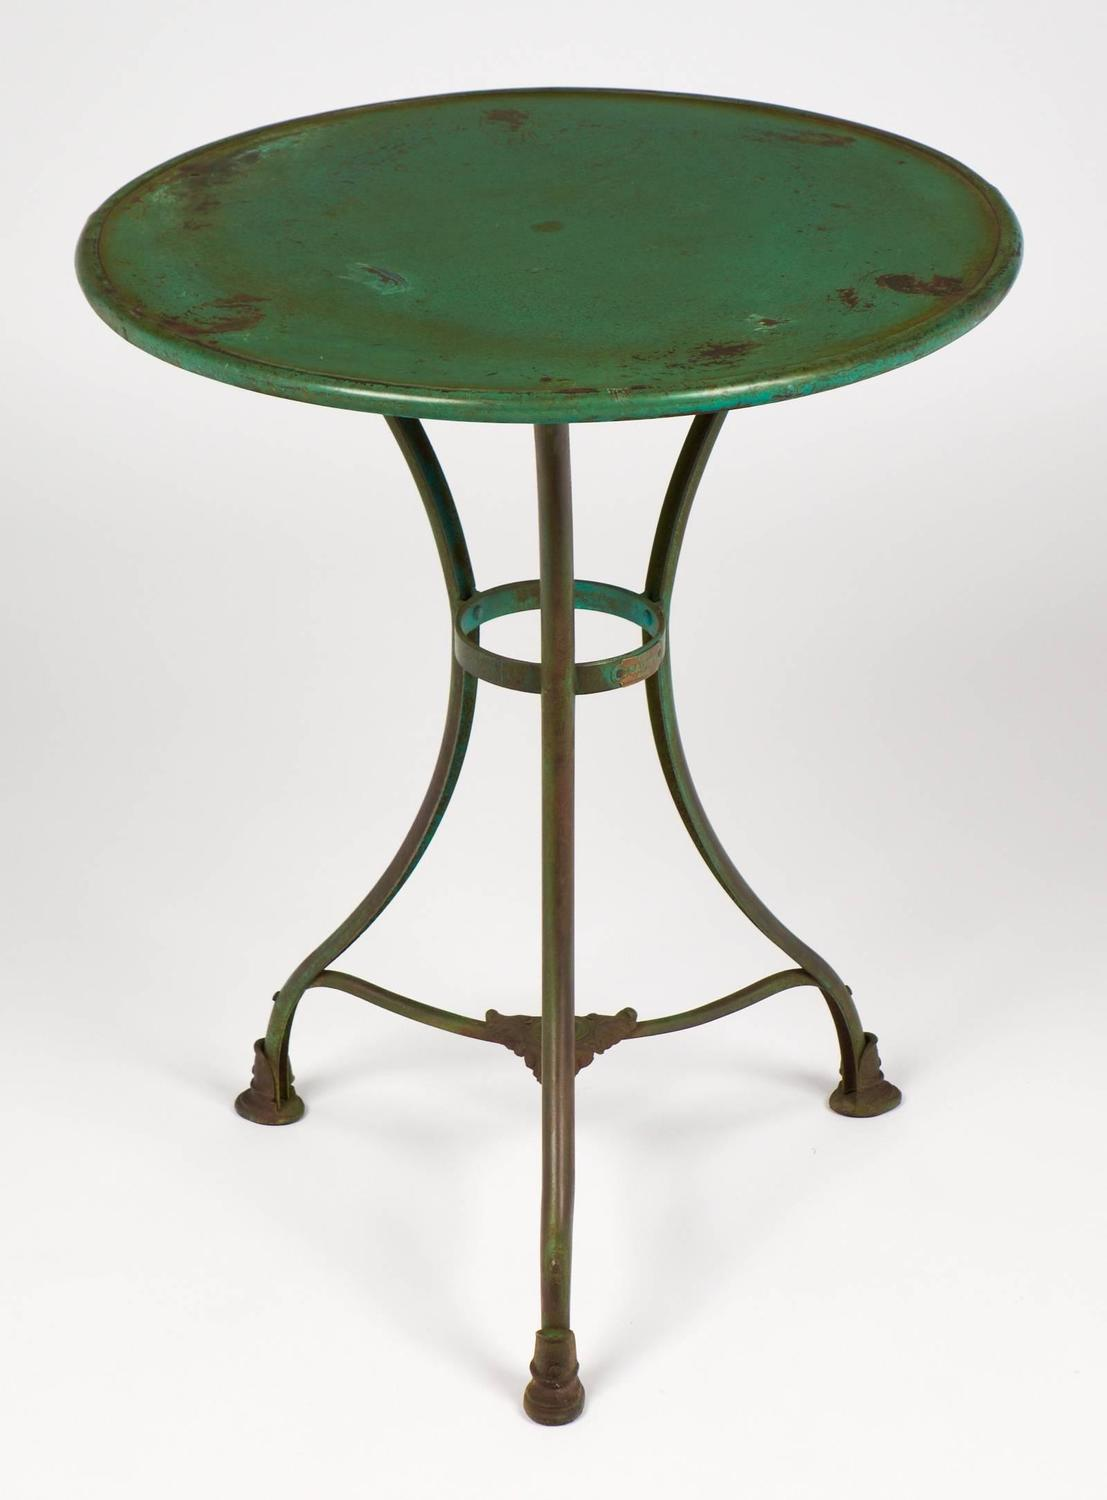 green french bistro chairs global upholstery chair parts hammered iron table for sale at 1stdibs